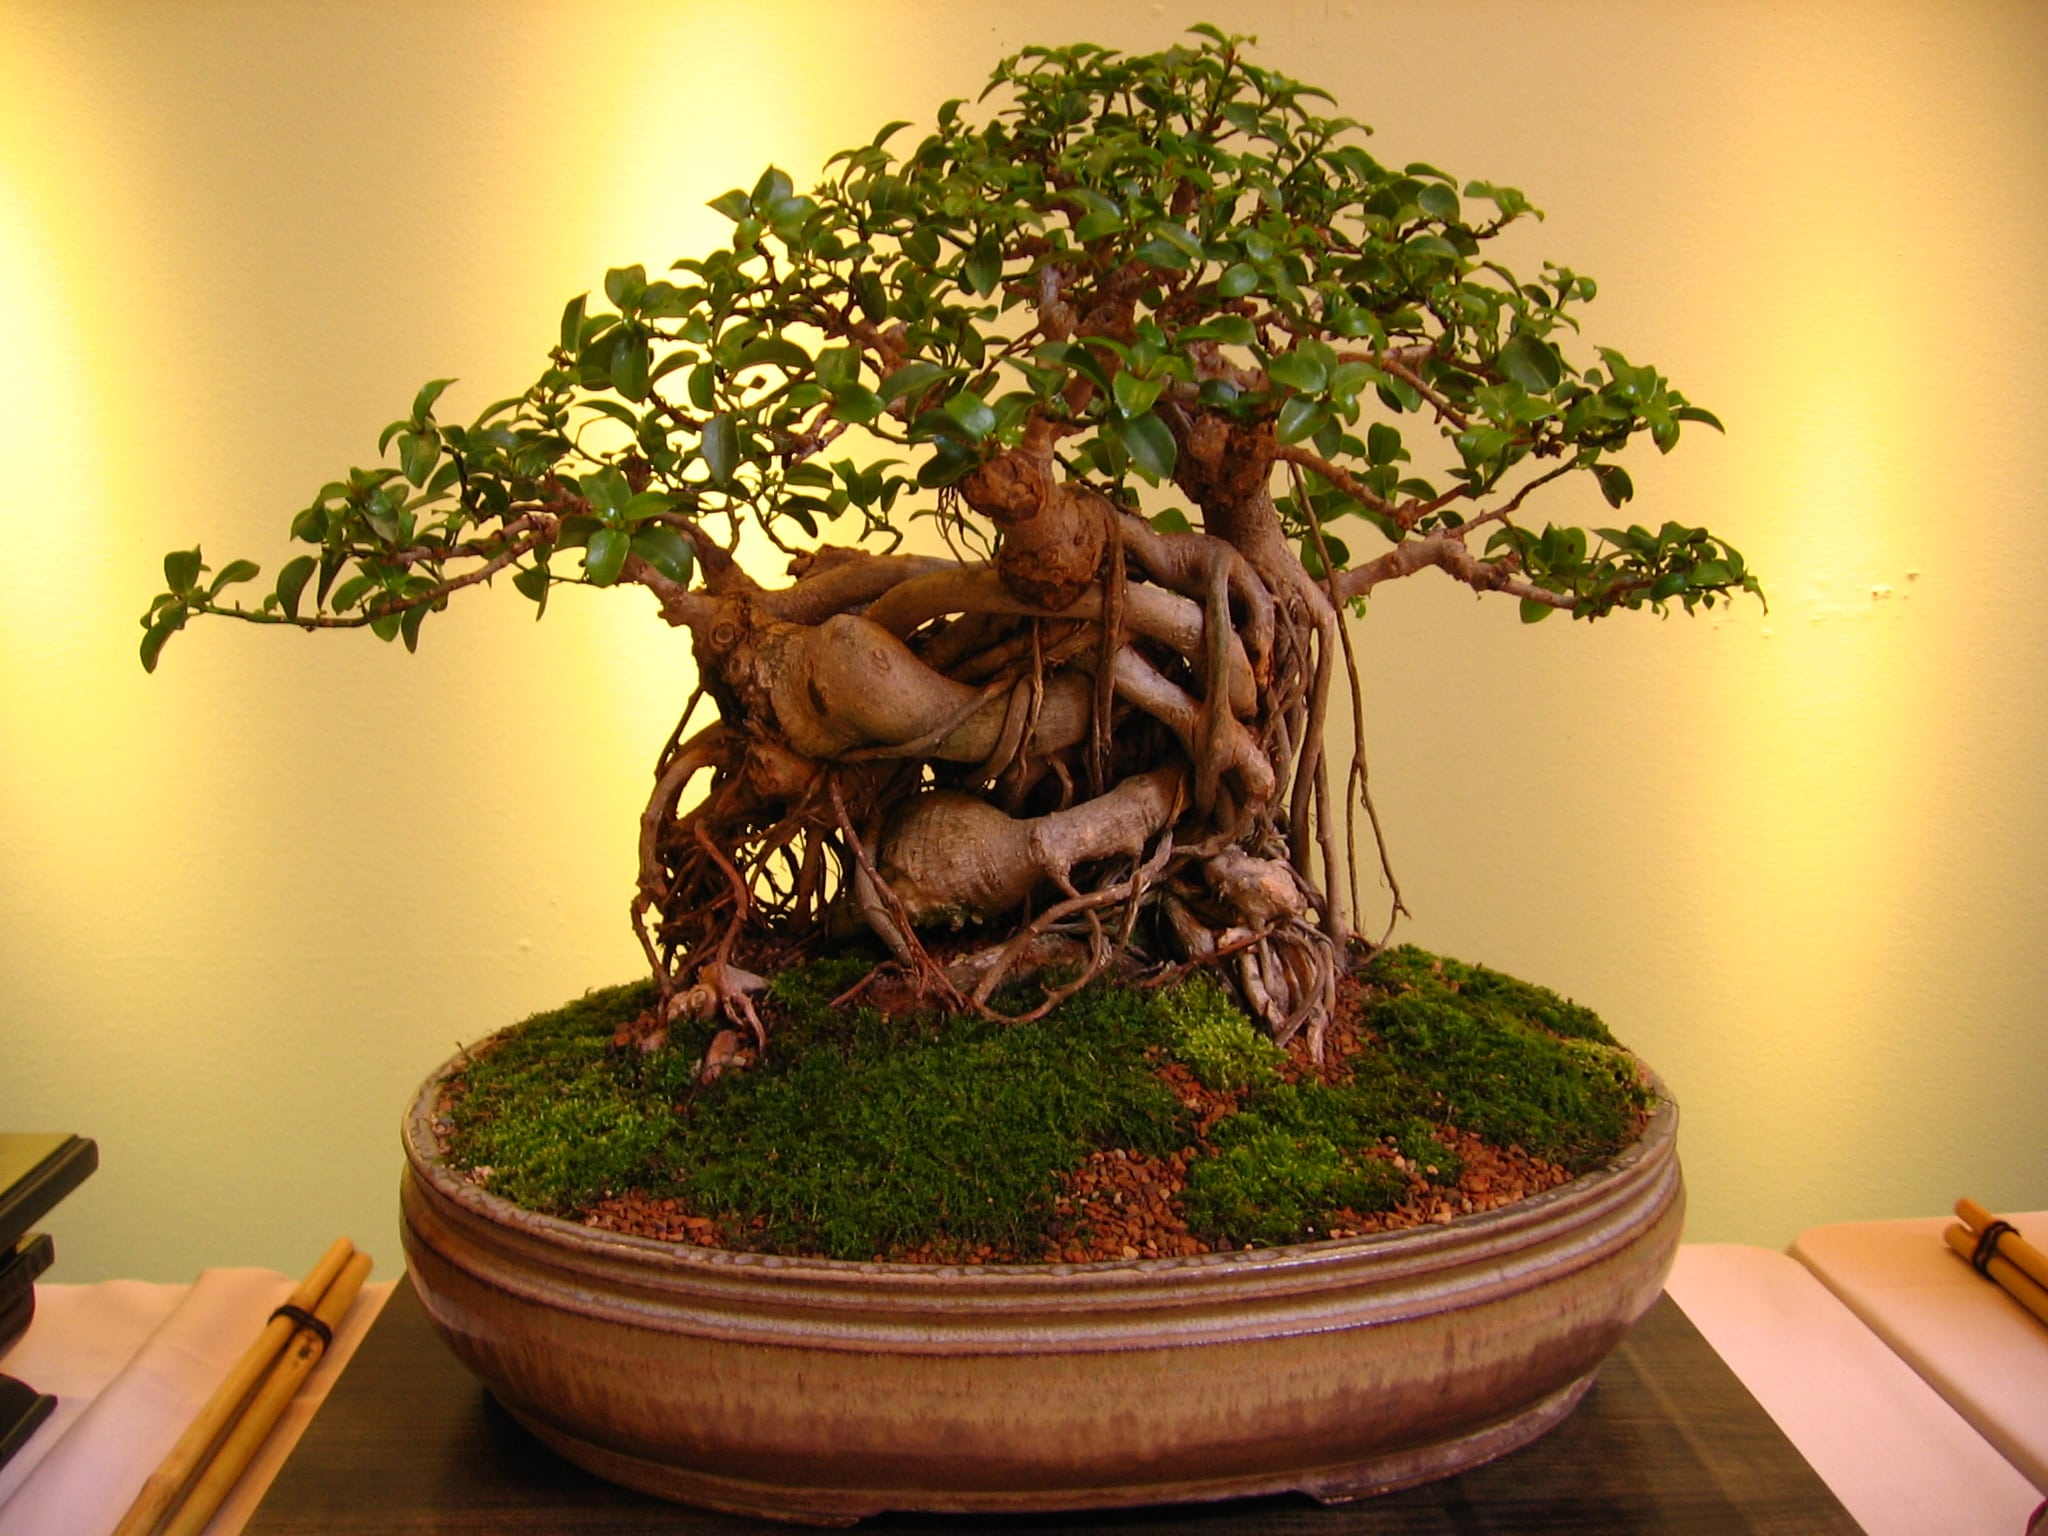 Things To Avoid When Growing Bonsai Trees